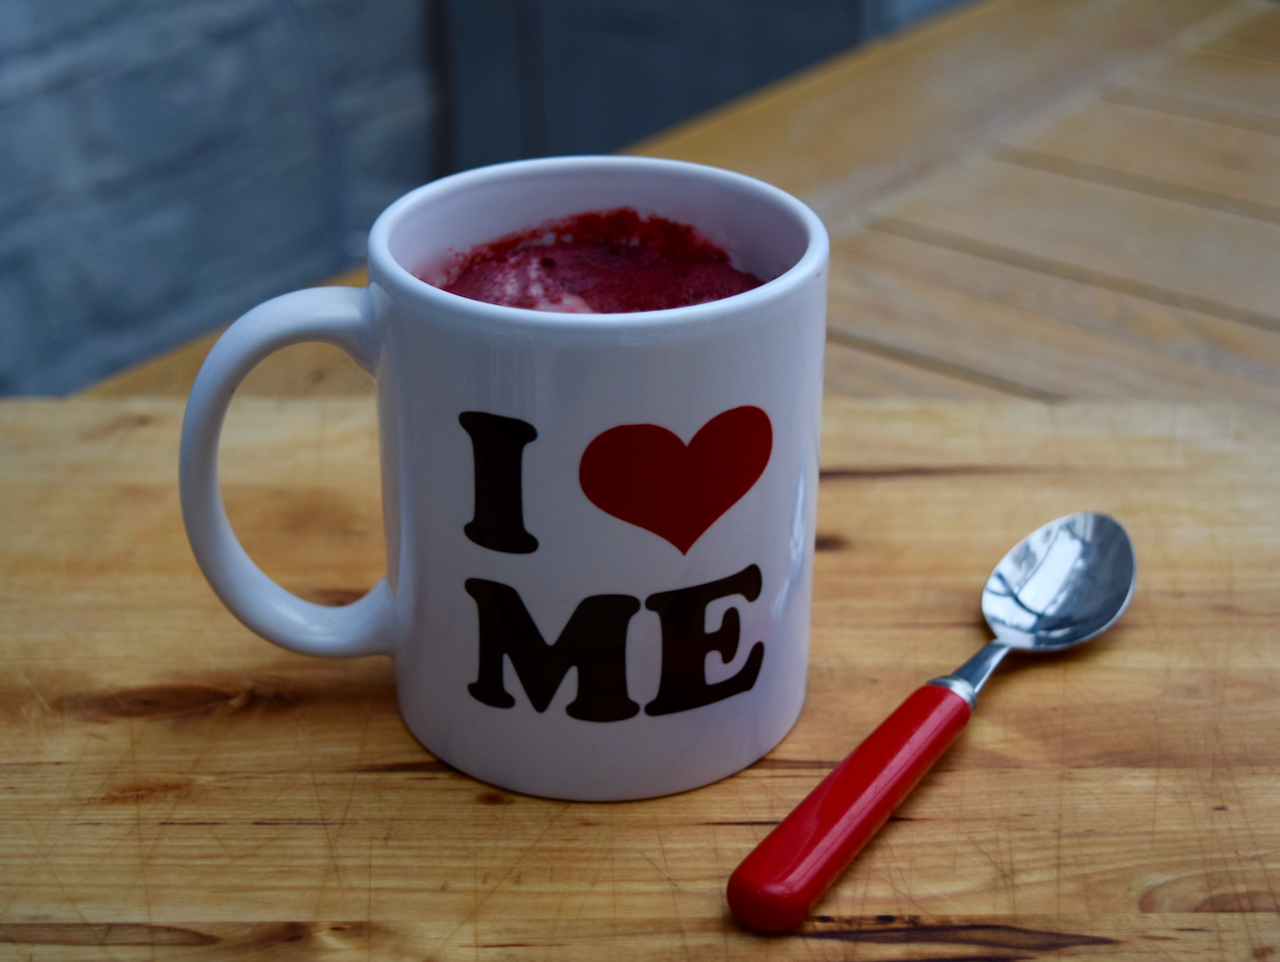 Red Velvet Mug Cake recipe from Lucy Loves Food Blog